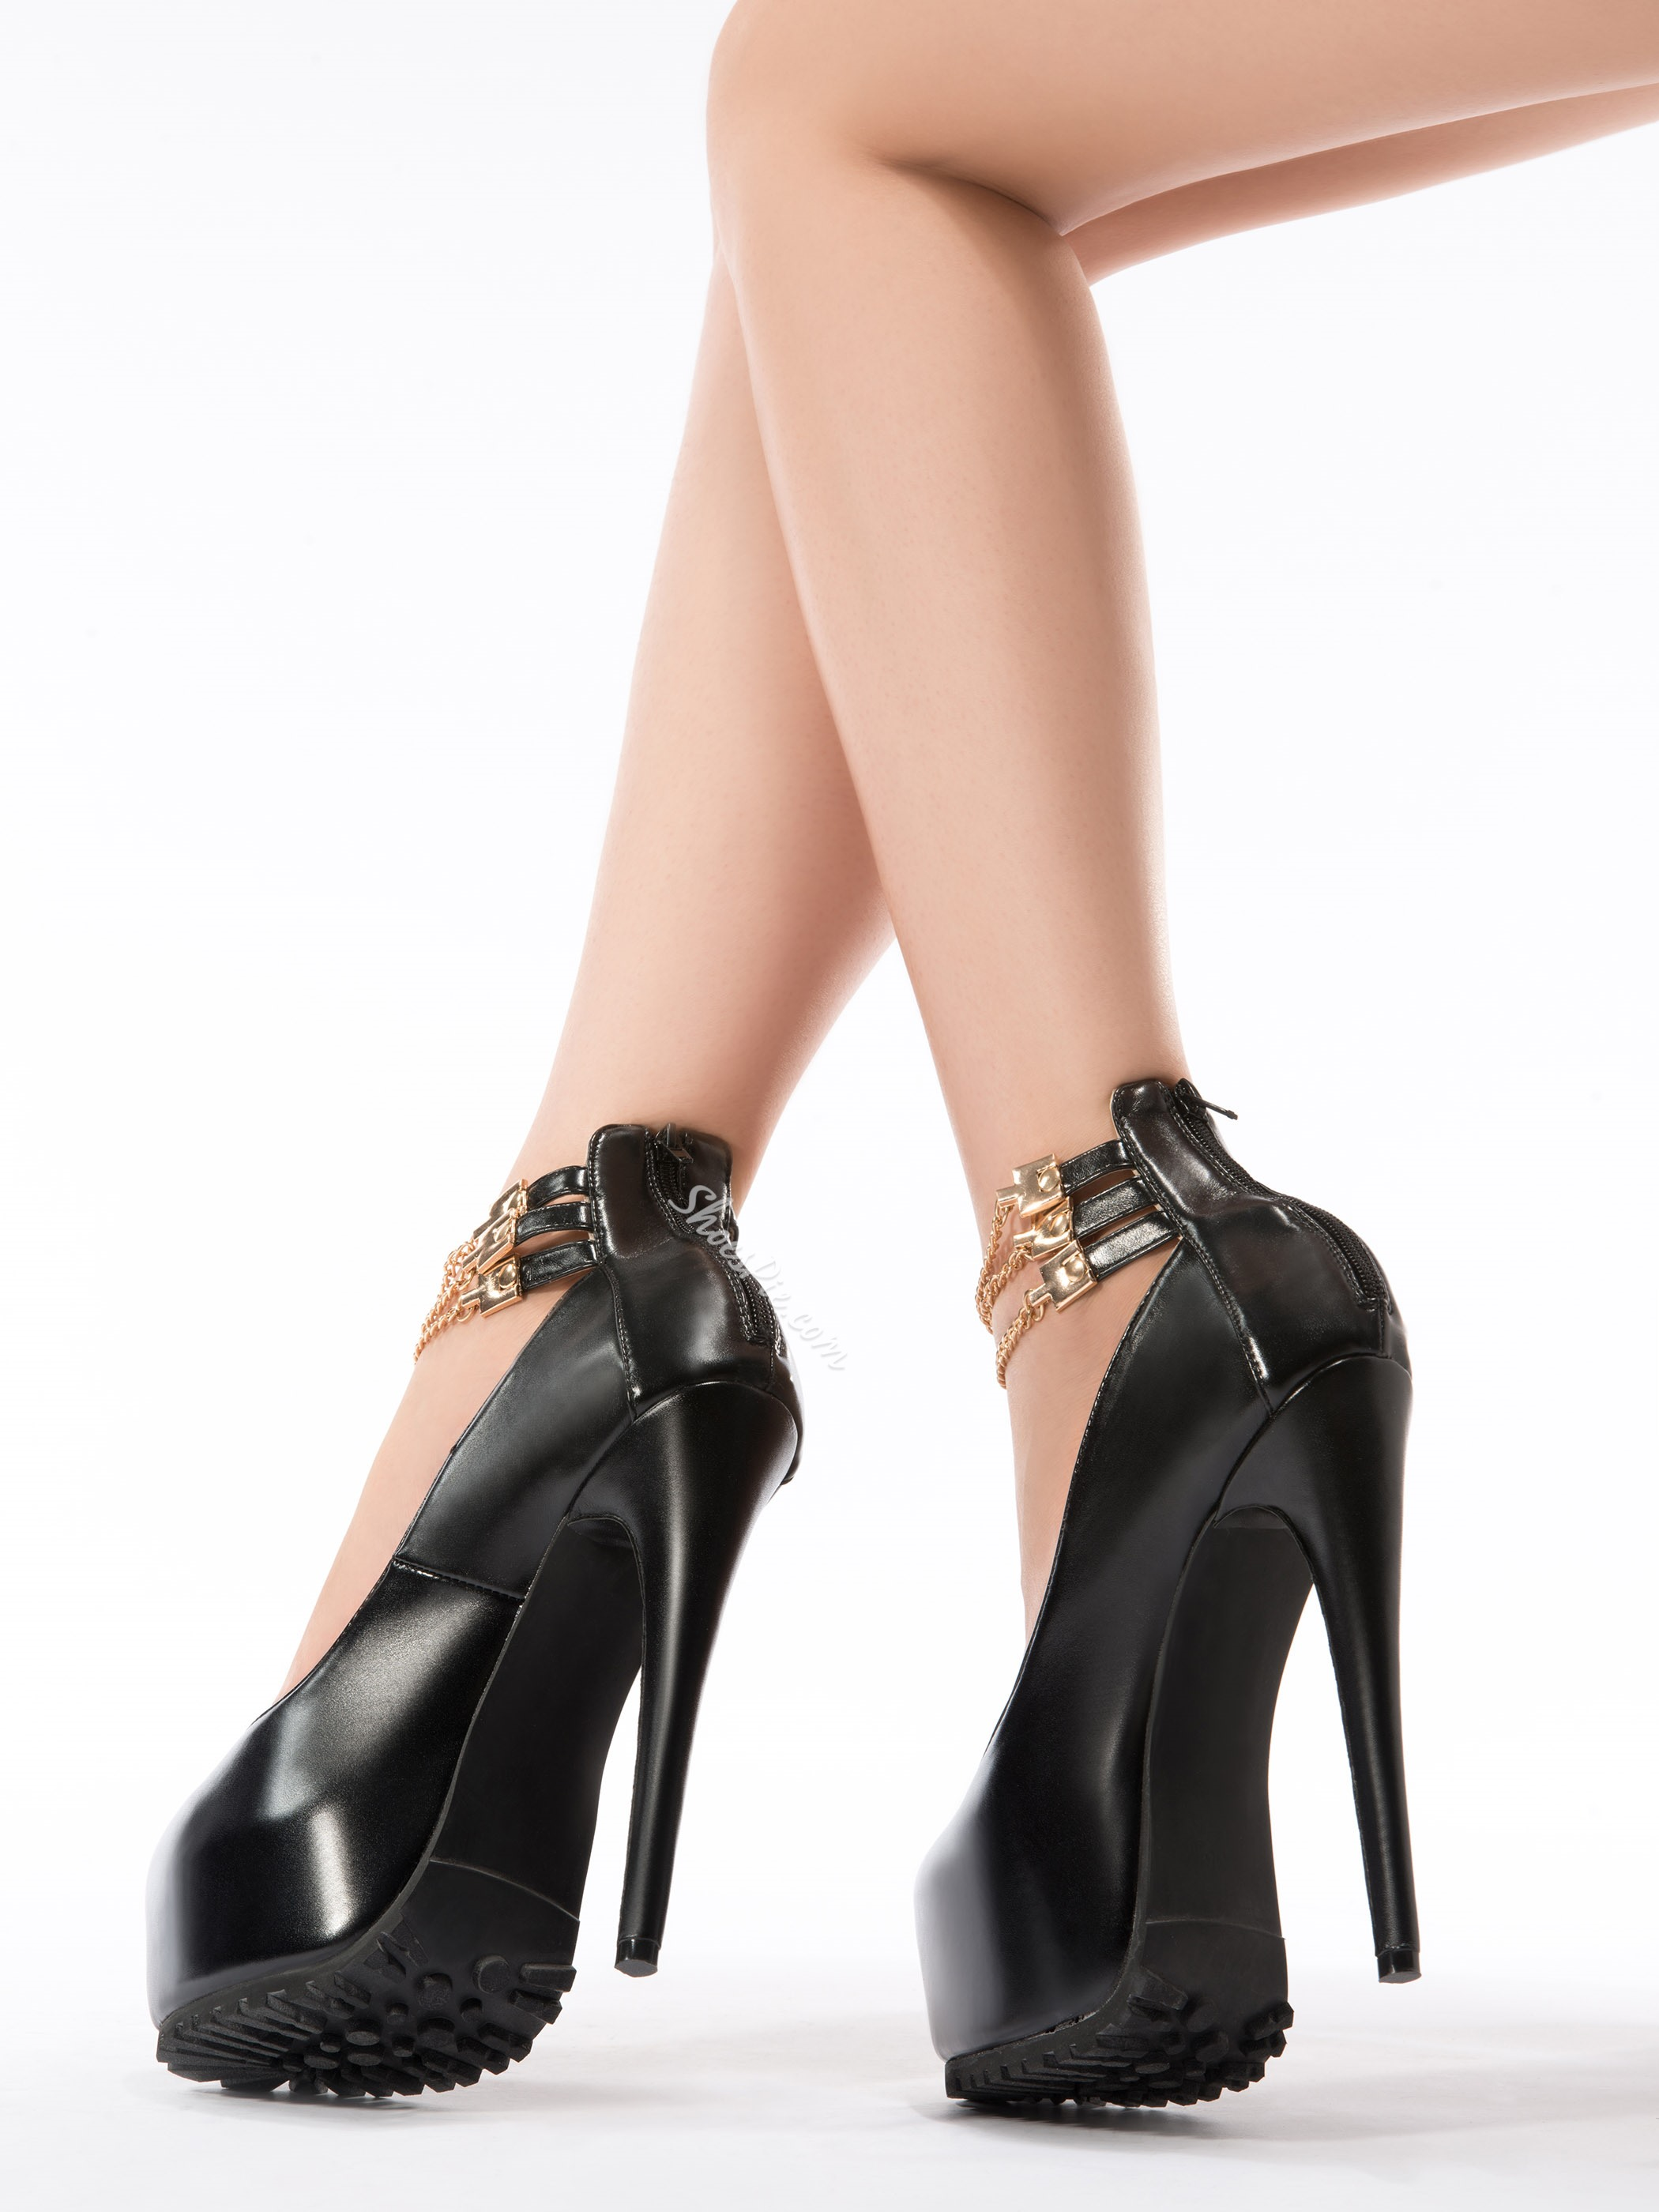 Fashionable Black Suede Metal Ankle Strap High Heel Shoes